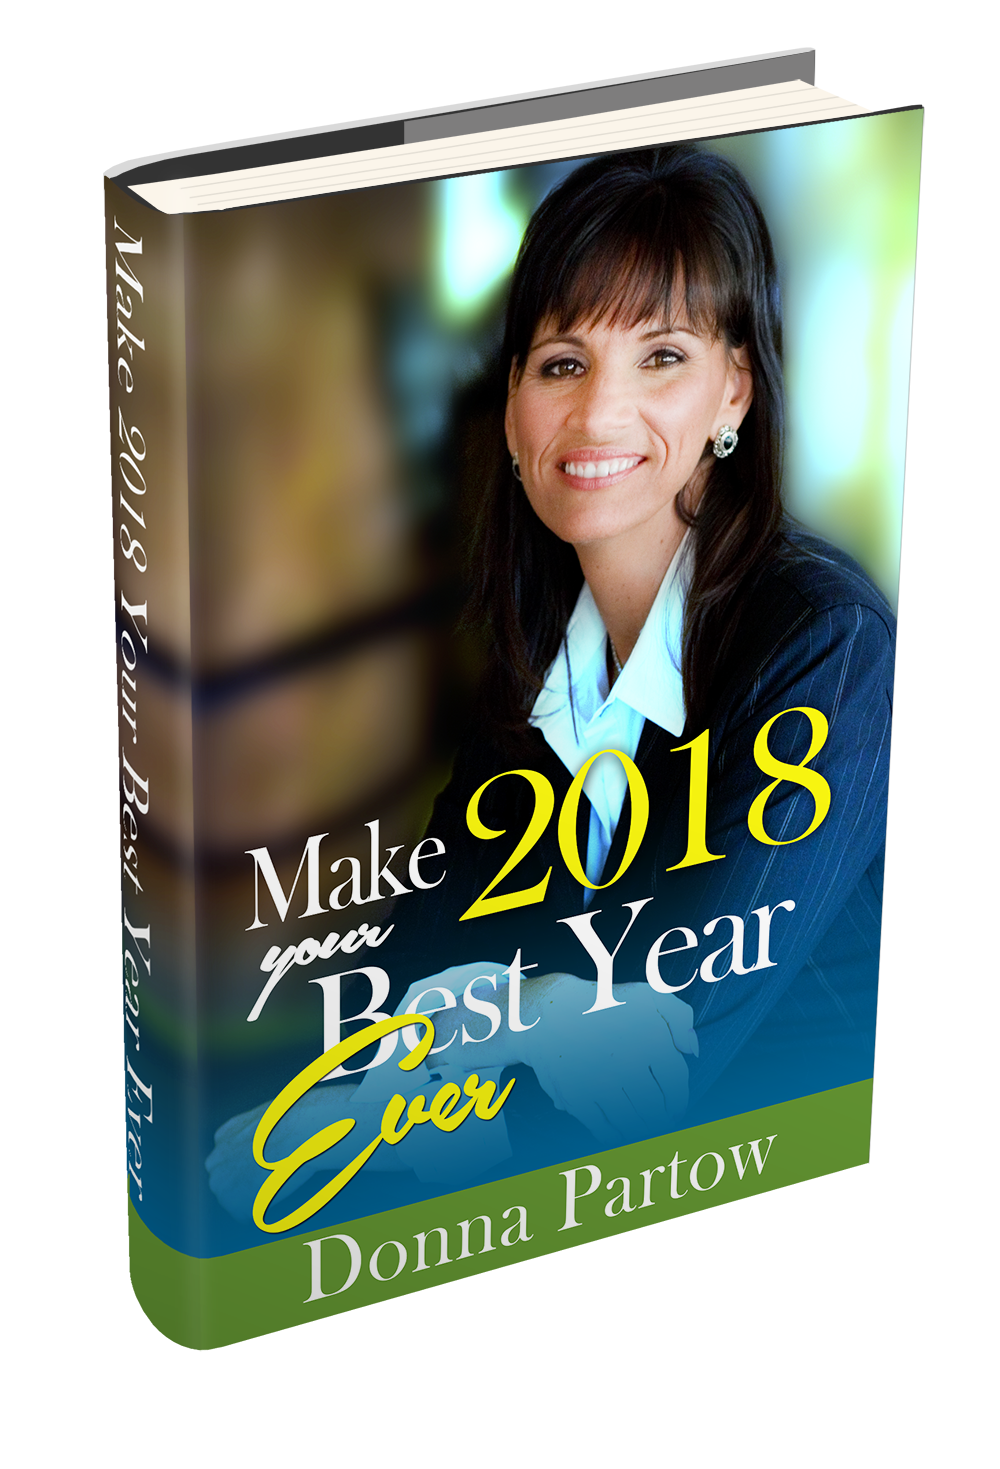 Your Best Year Ever! Free e-book by Donna Partow